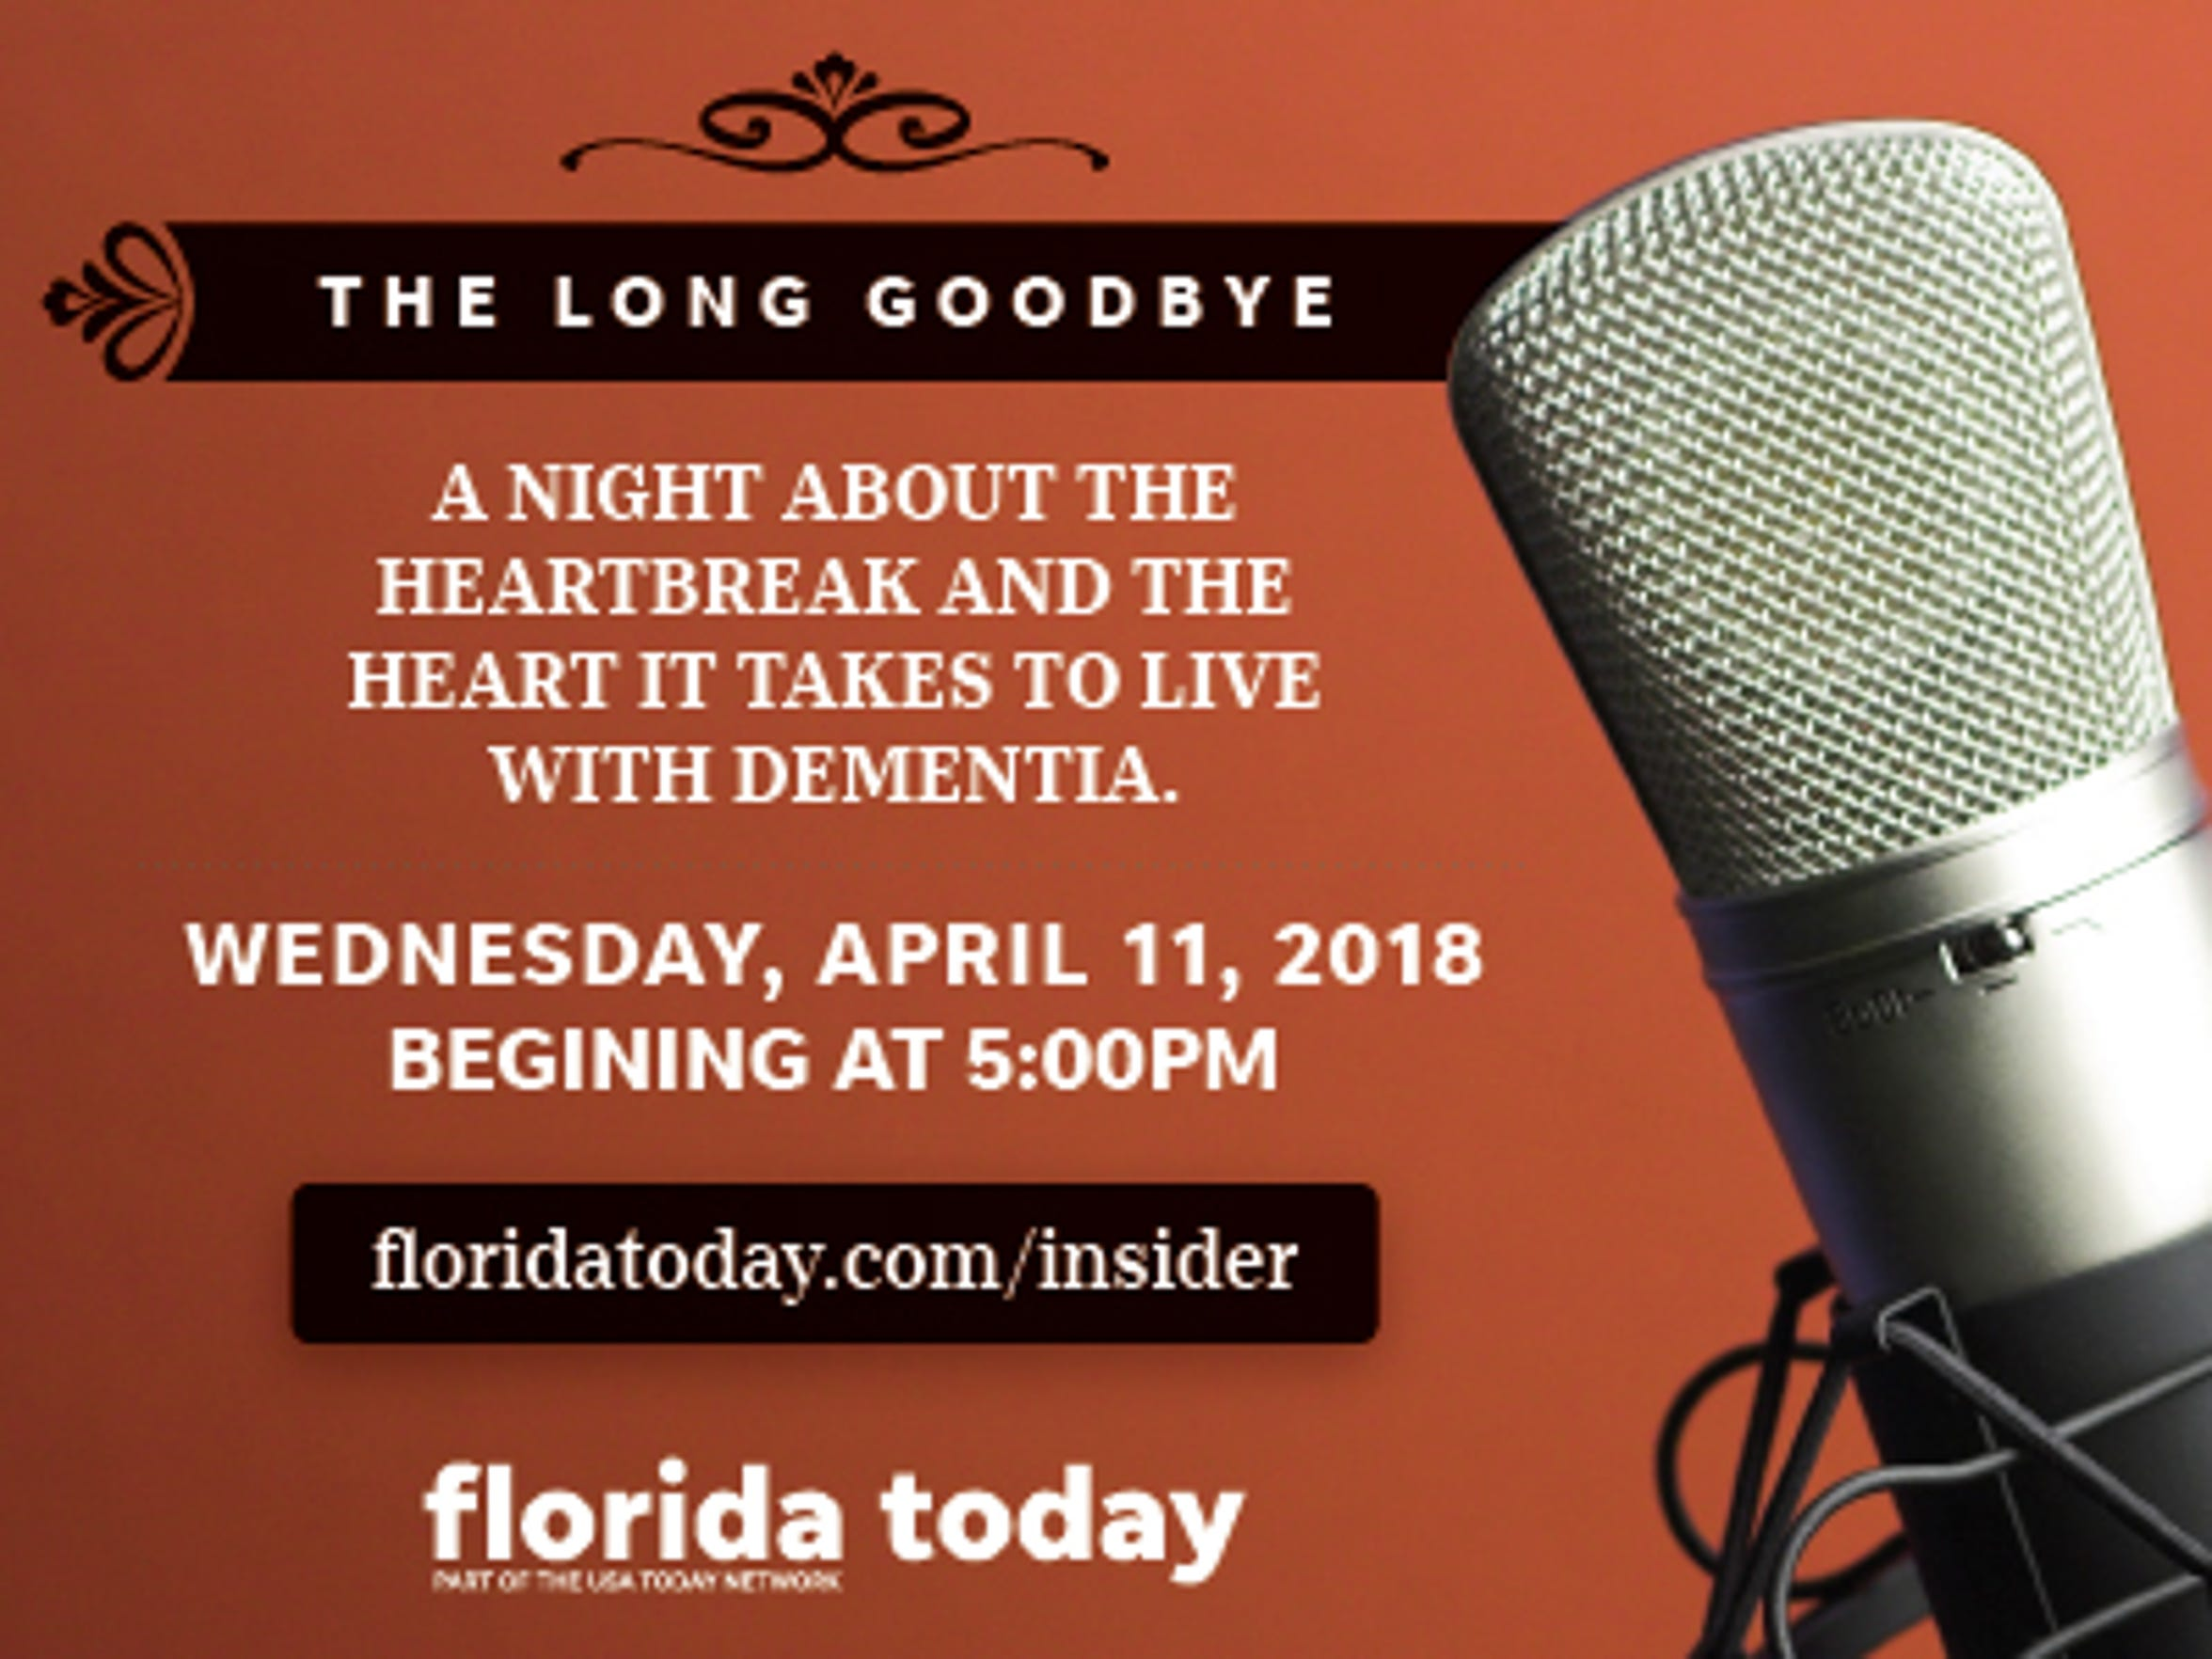 Join FLORIDA TODAY's Britt Kennerly at an exclusive event to discuss The Long Goodbye. Visit floridatoday.com/insider register.